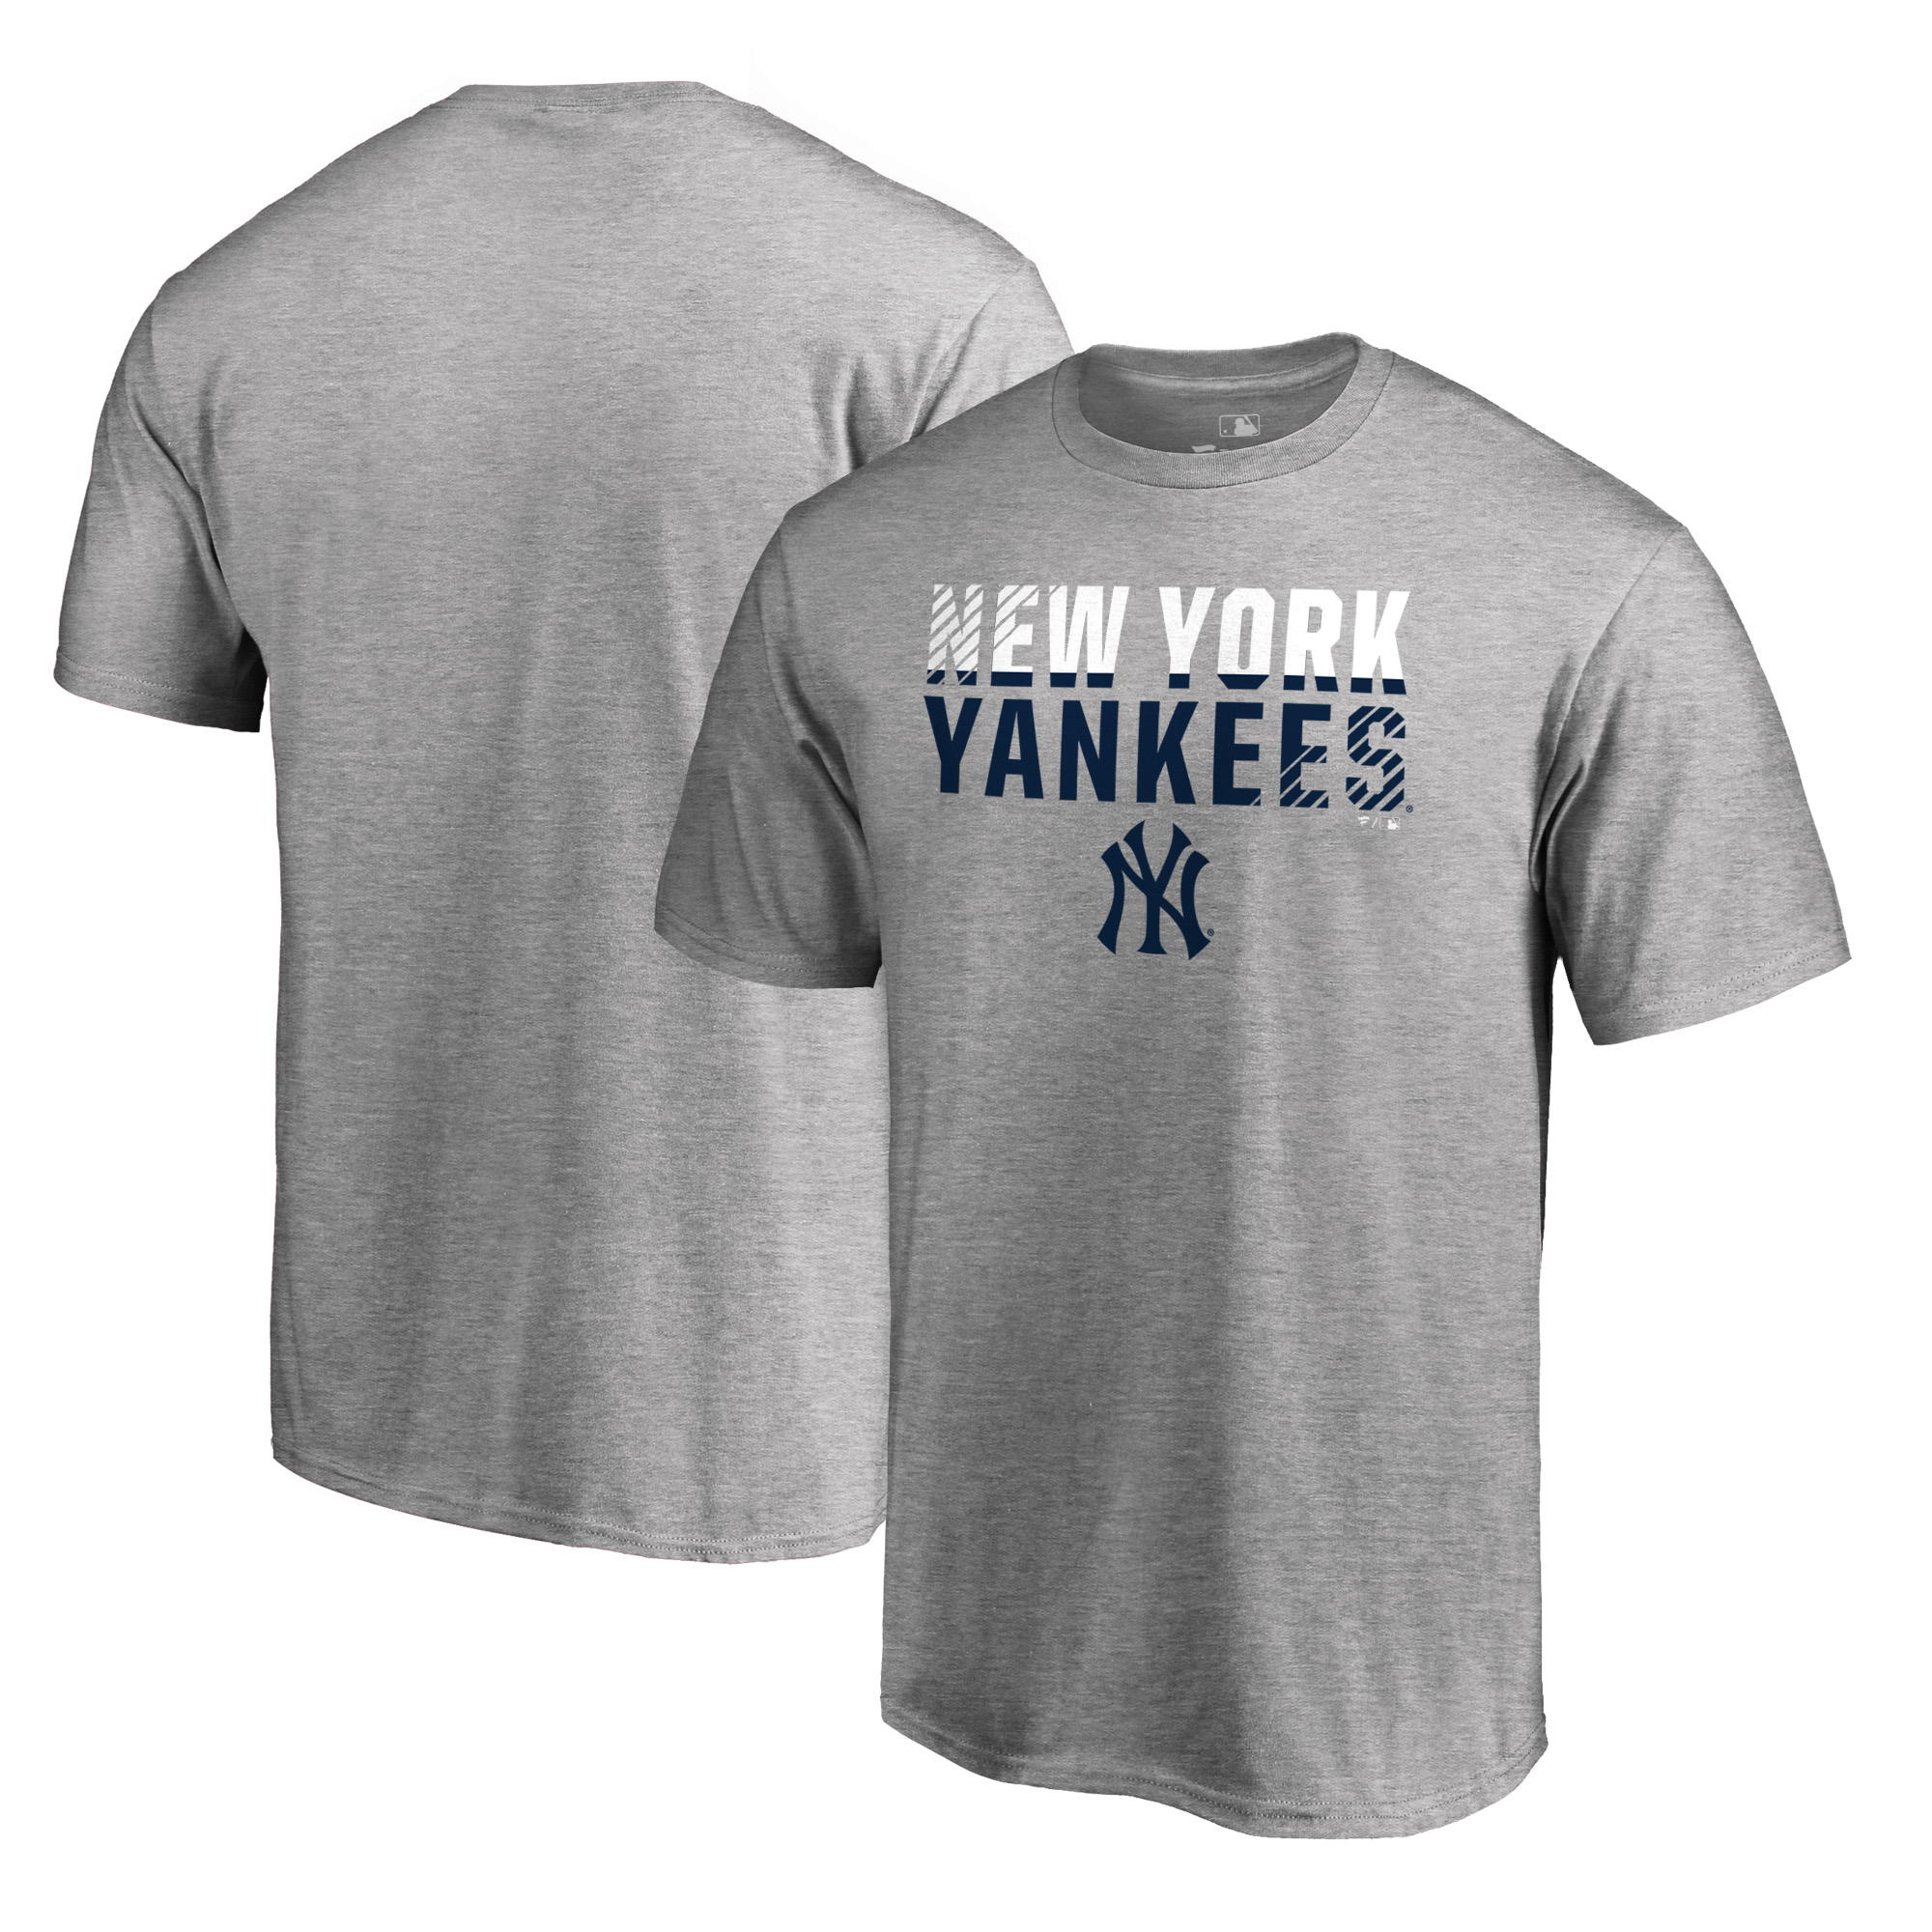 New York Yankees Fanatics Branded Team Fade Out T-Shirt - Heathered Gray -  Walmart.com 3dc1694a4e4